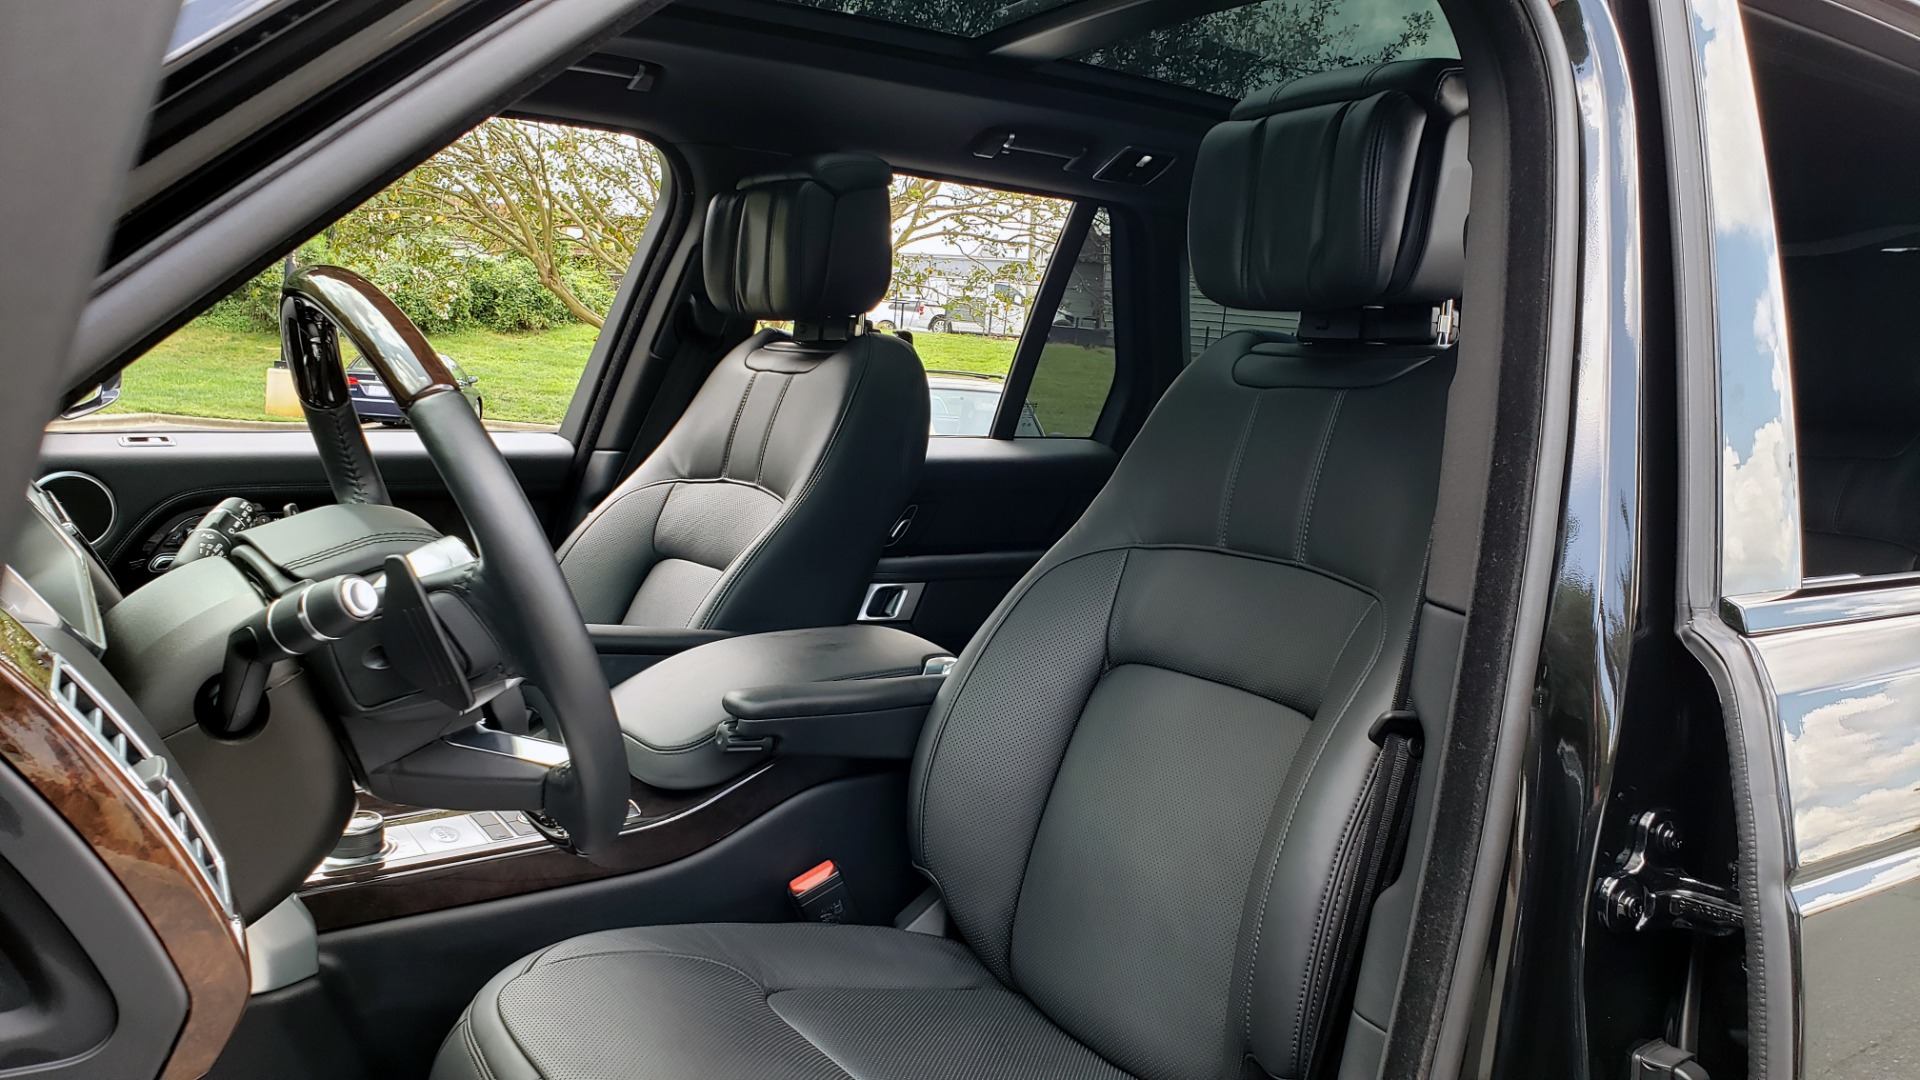 Used 2019 Land Rover RANGE ROVER SCV8 / NAV / PANO-ROOF / MERIDIAN / REARVIEW for sale Sold at Formula Imports in Charlotte NC 28227 49